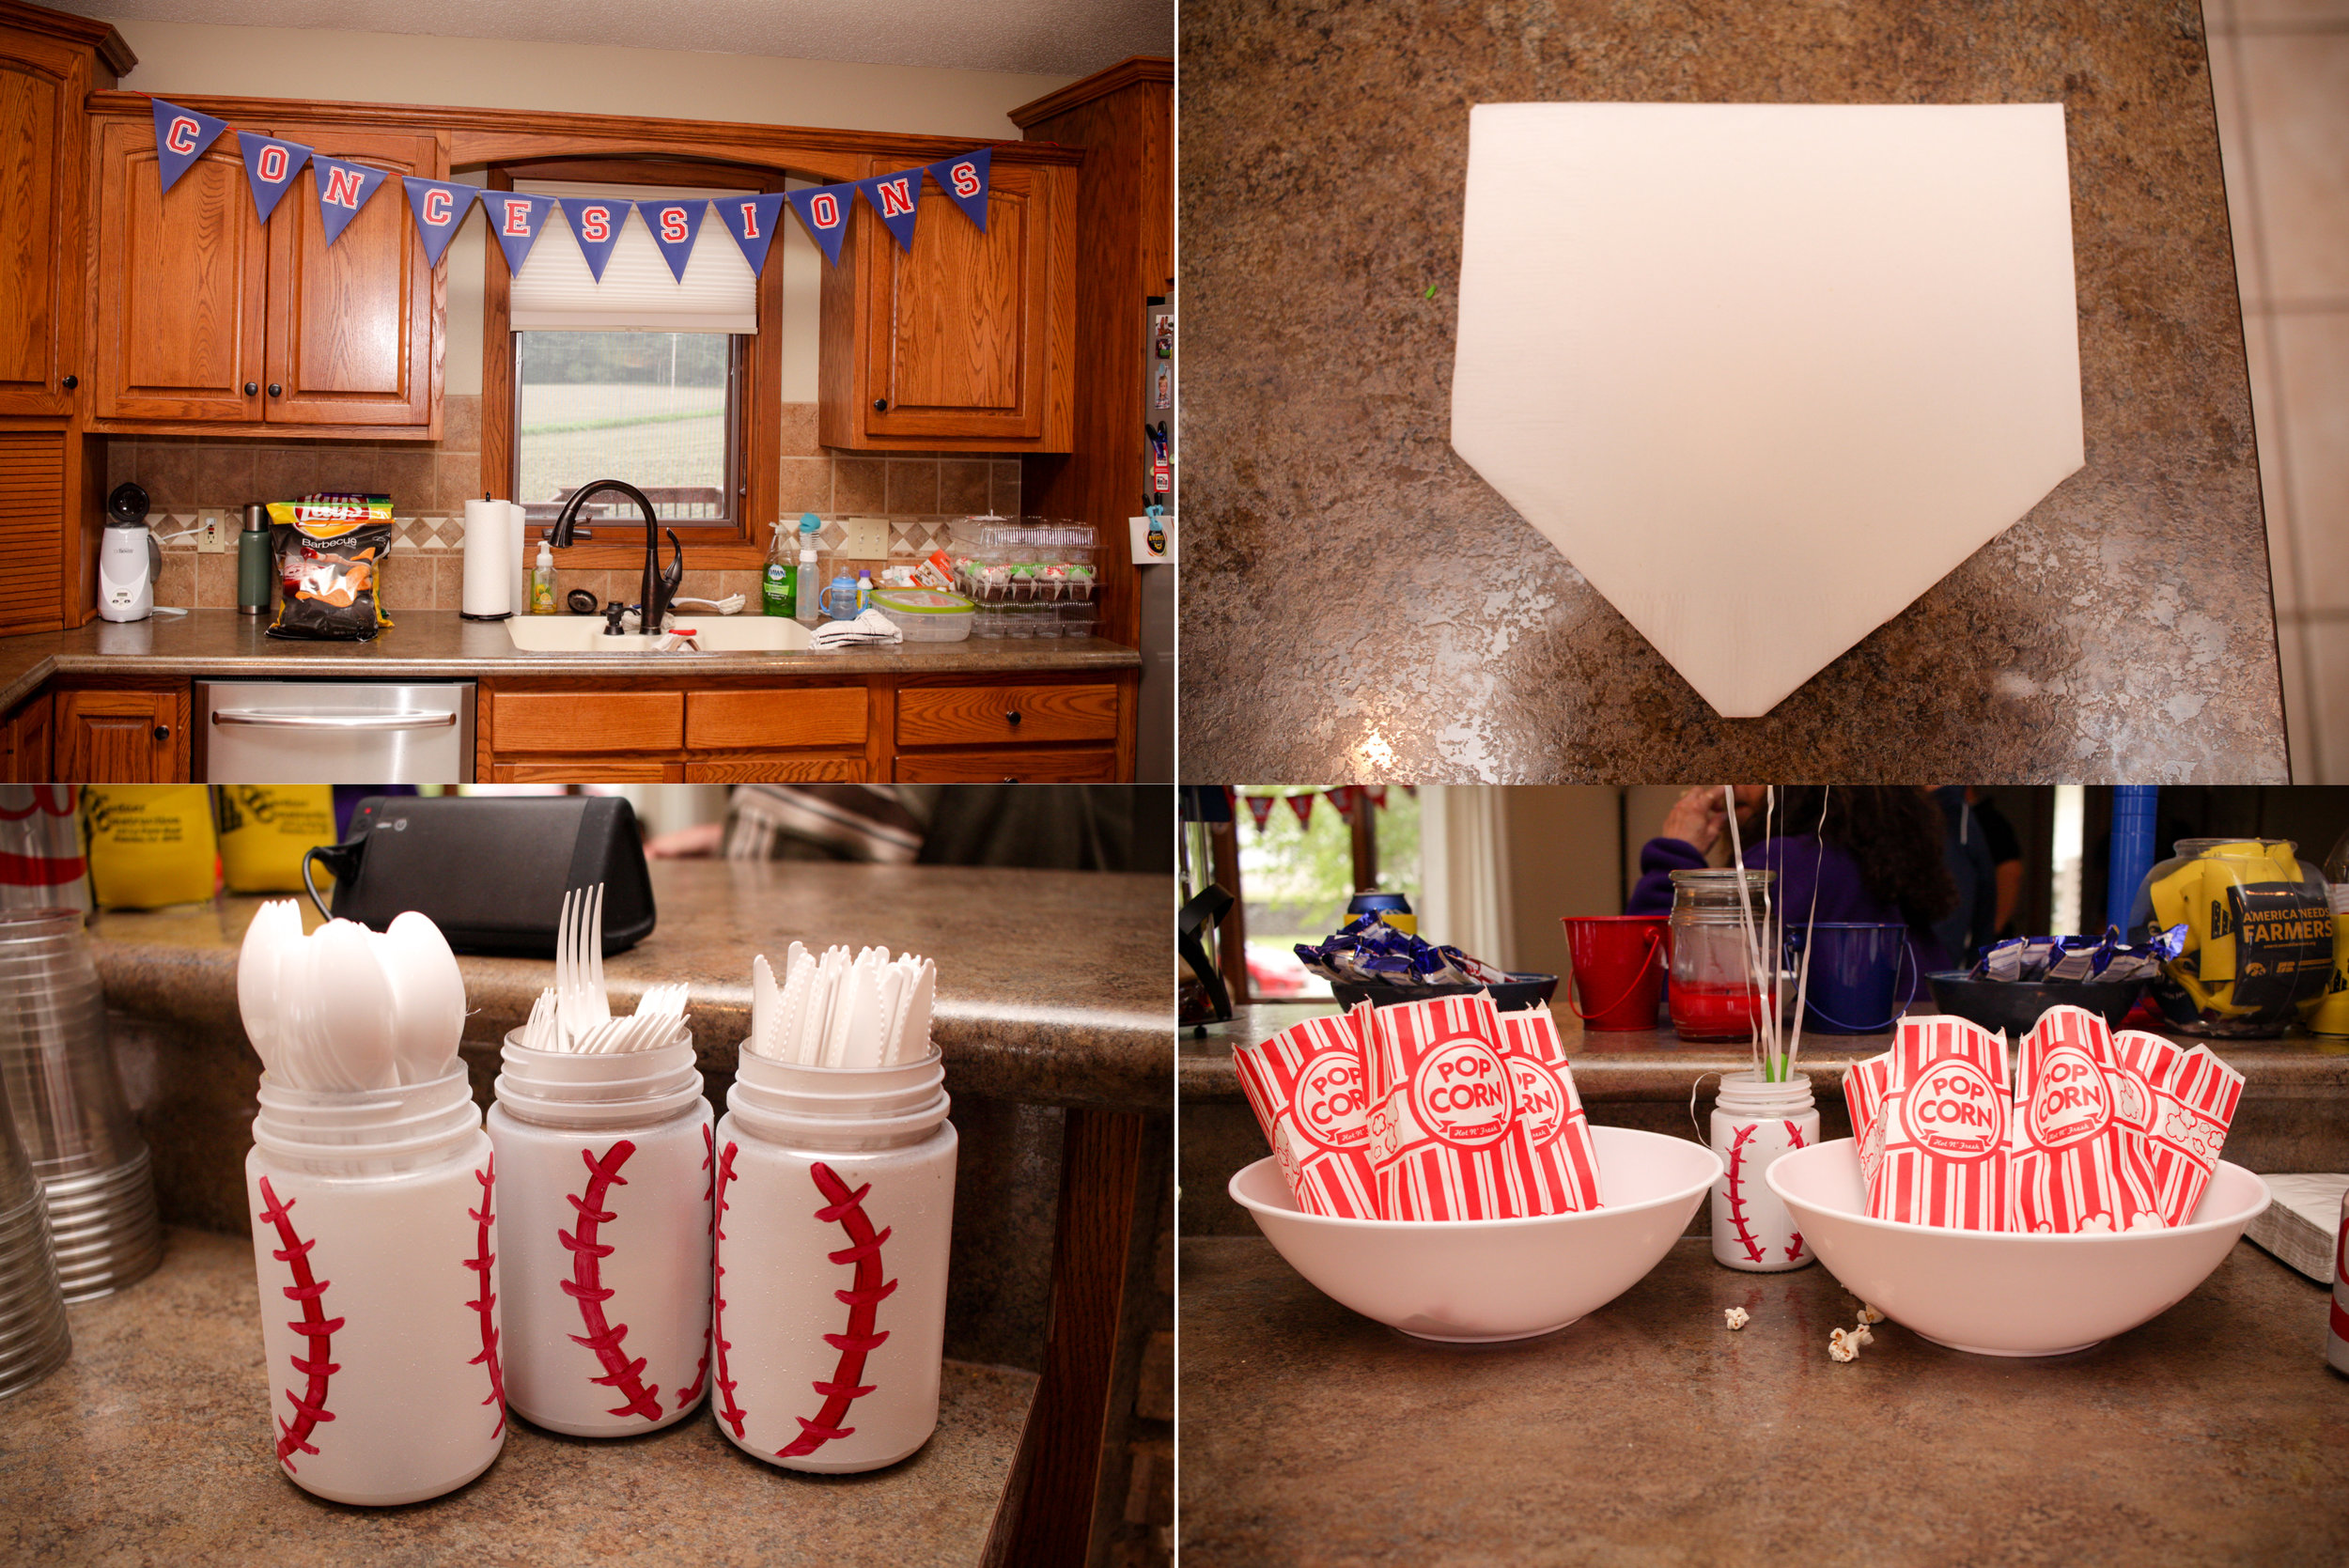 The decorations were on point! His mom even transformed the napkins into a home plate - how cute is that?!